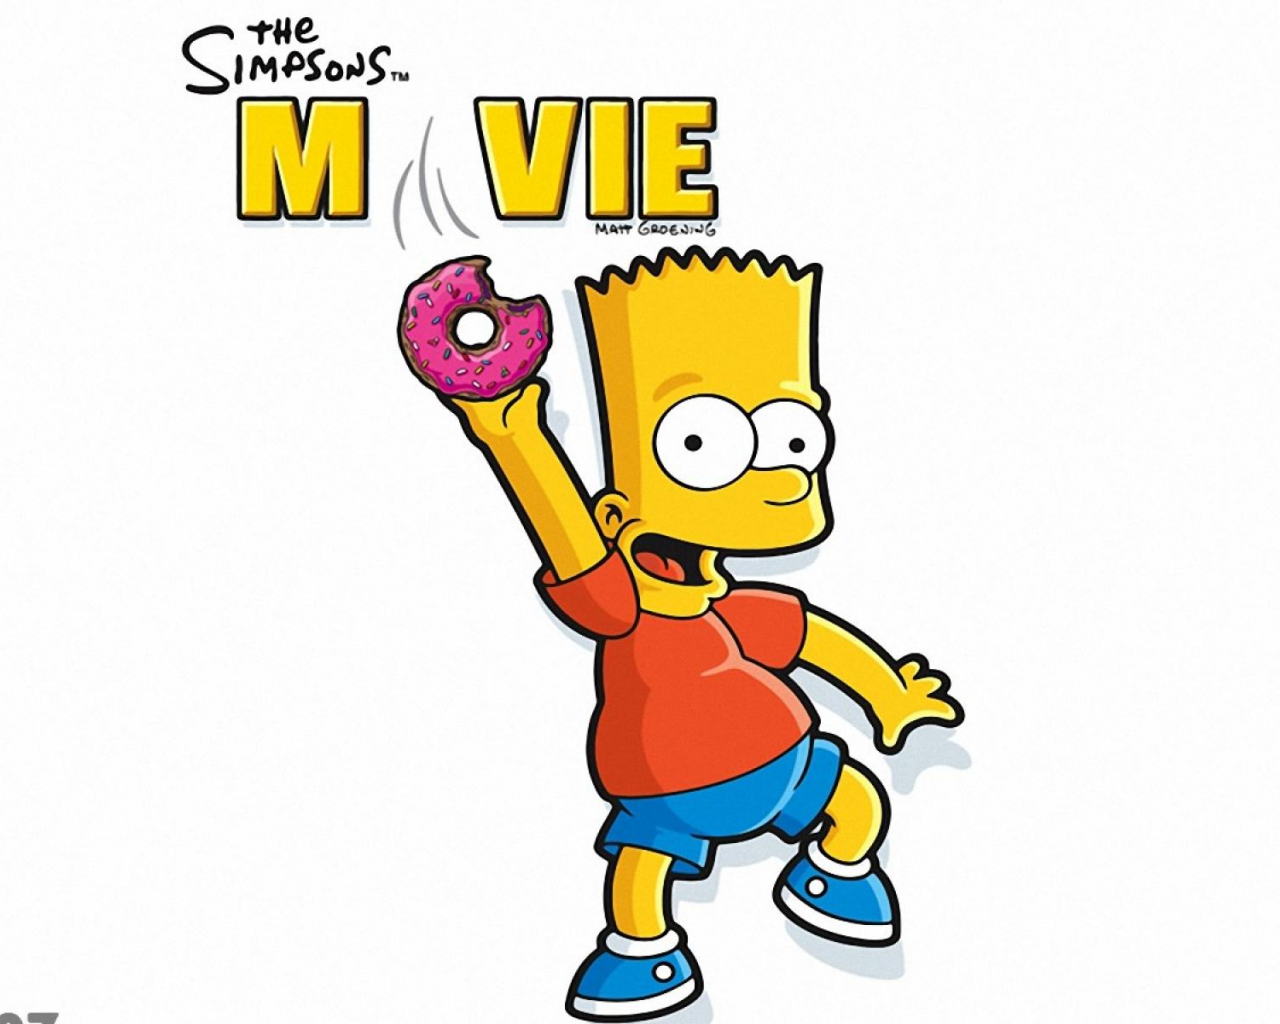 Free Download The Simpsons Movie Wallpaper Images Thecelebritypix 1920x1200 For Your Desktop Mobile Tablet Explore 73 Simpsons Movie Wallpaper Crazy Wallpapers Homer Simpson Wallpaper Bart Simpson Wallpaper